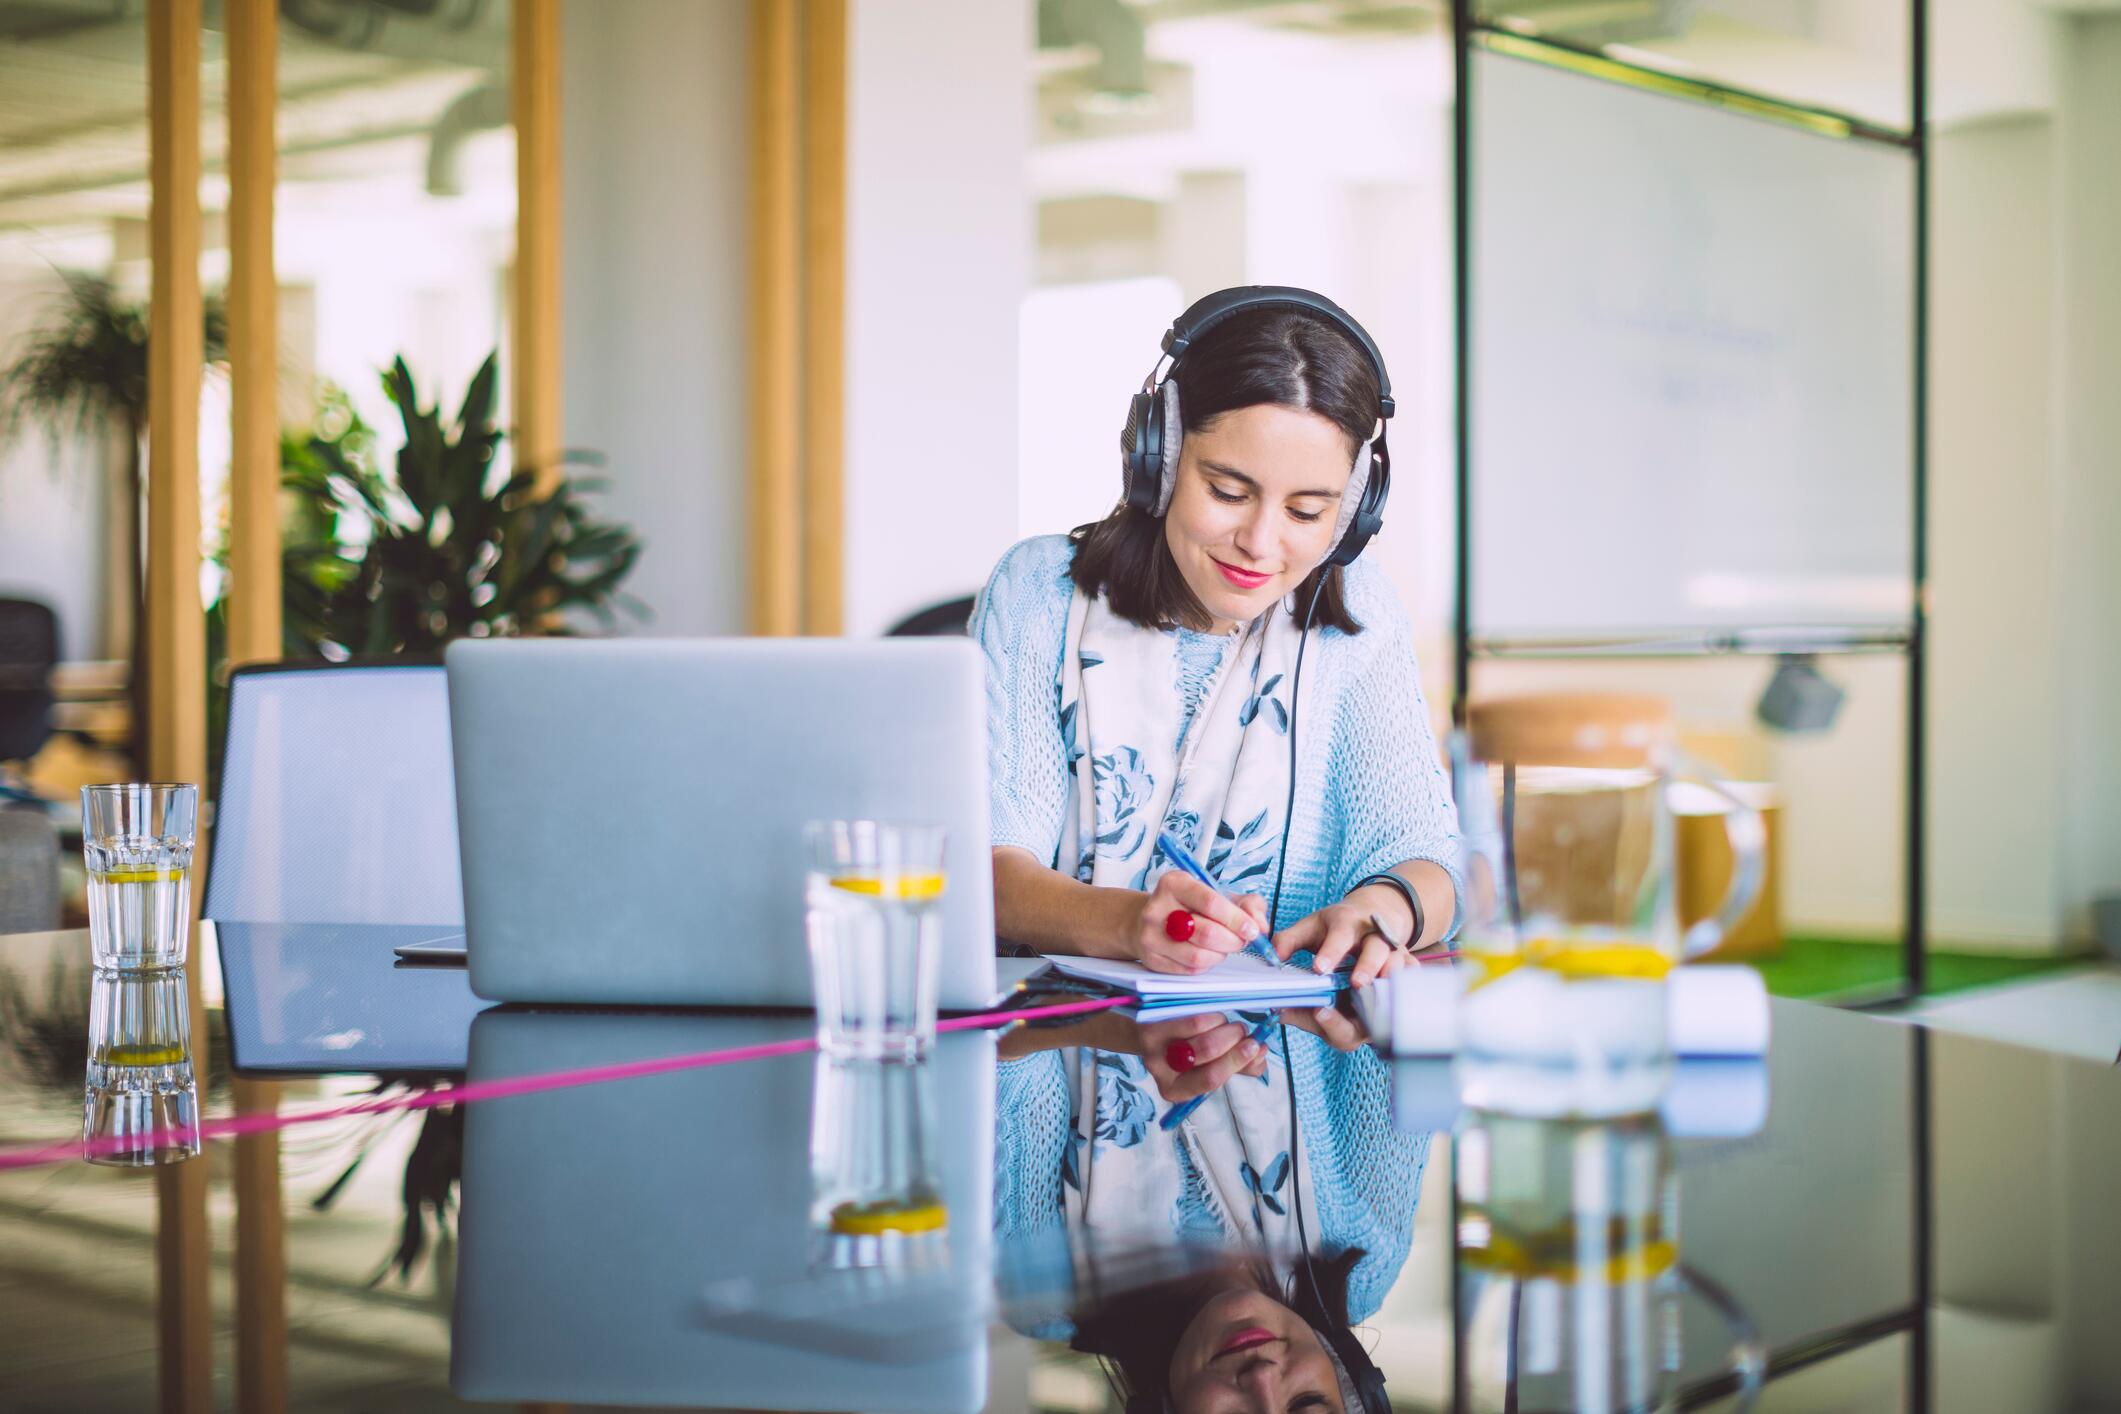 Woman wearing headphones at a computer